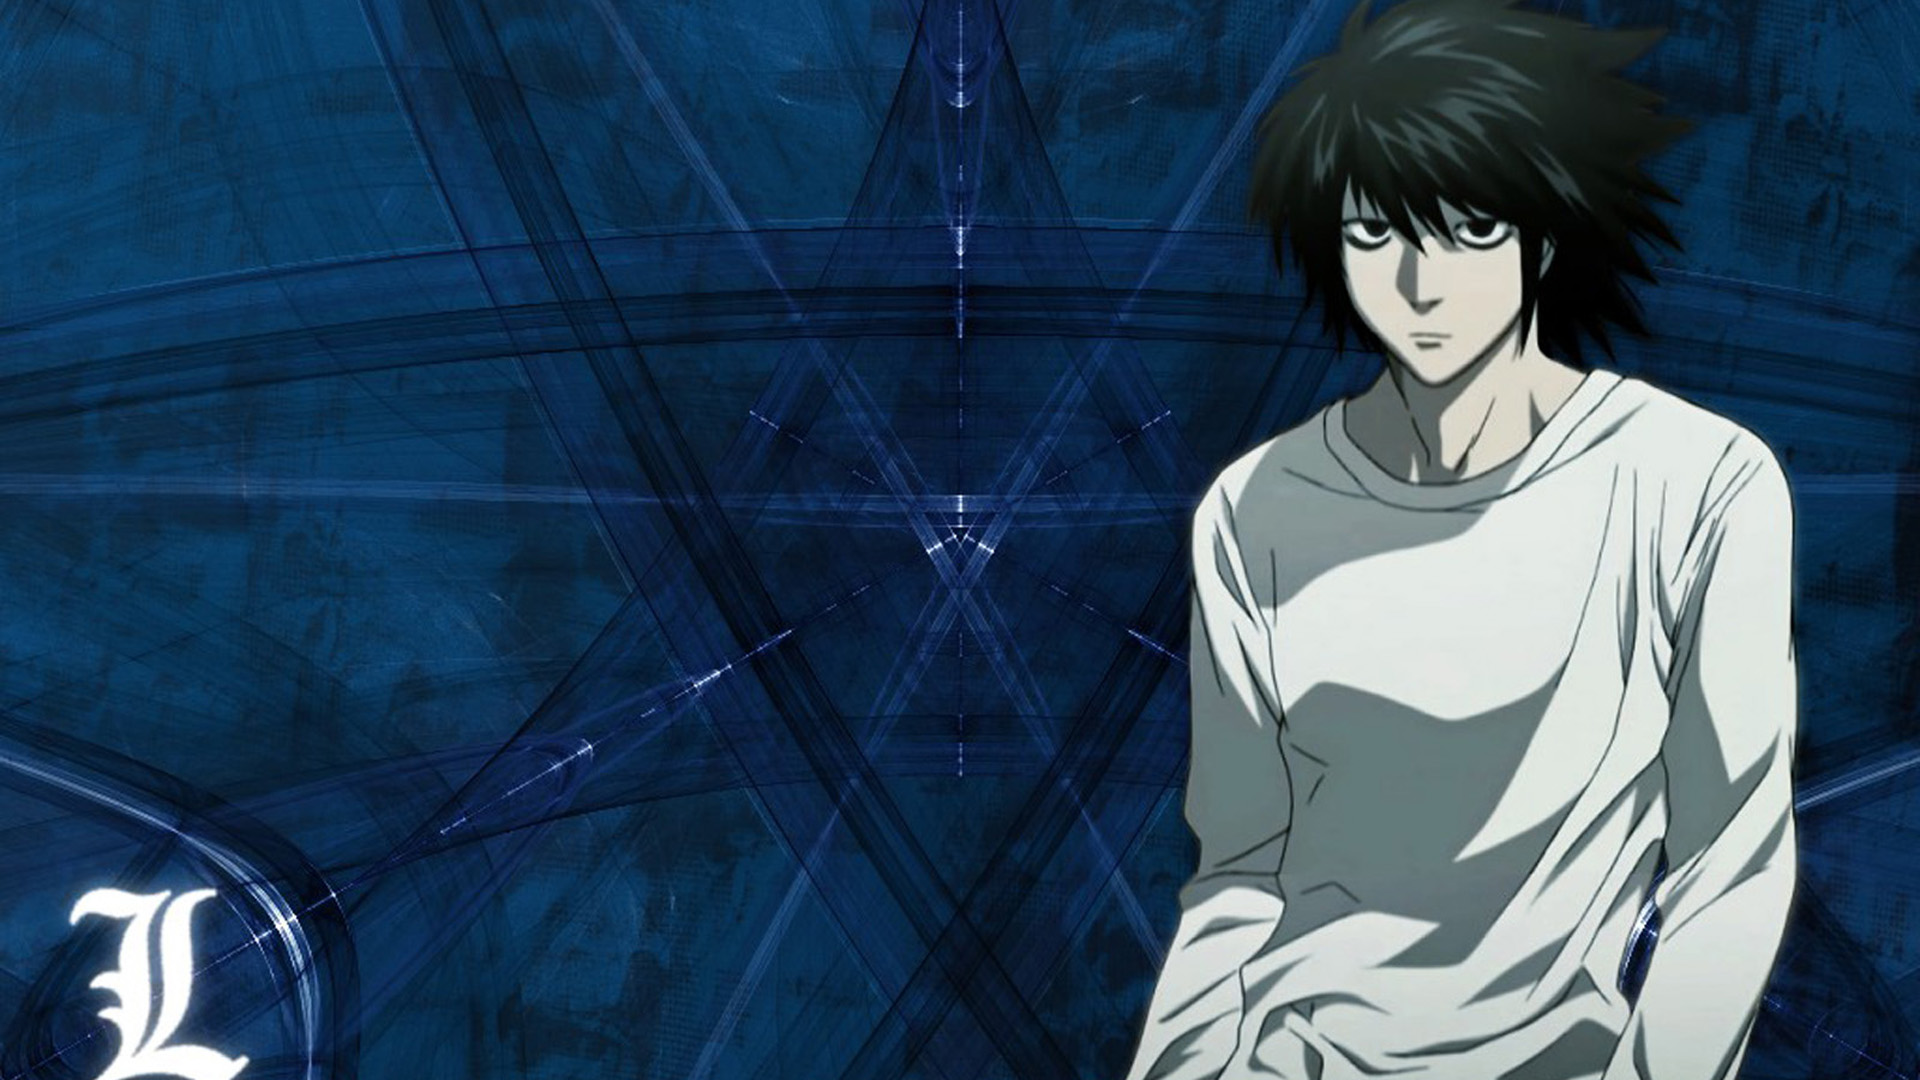 Wallpaper Hd Android Death Note